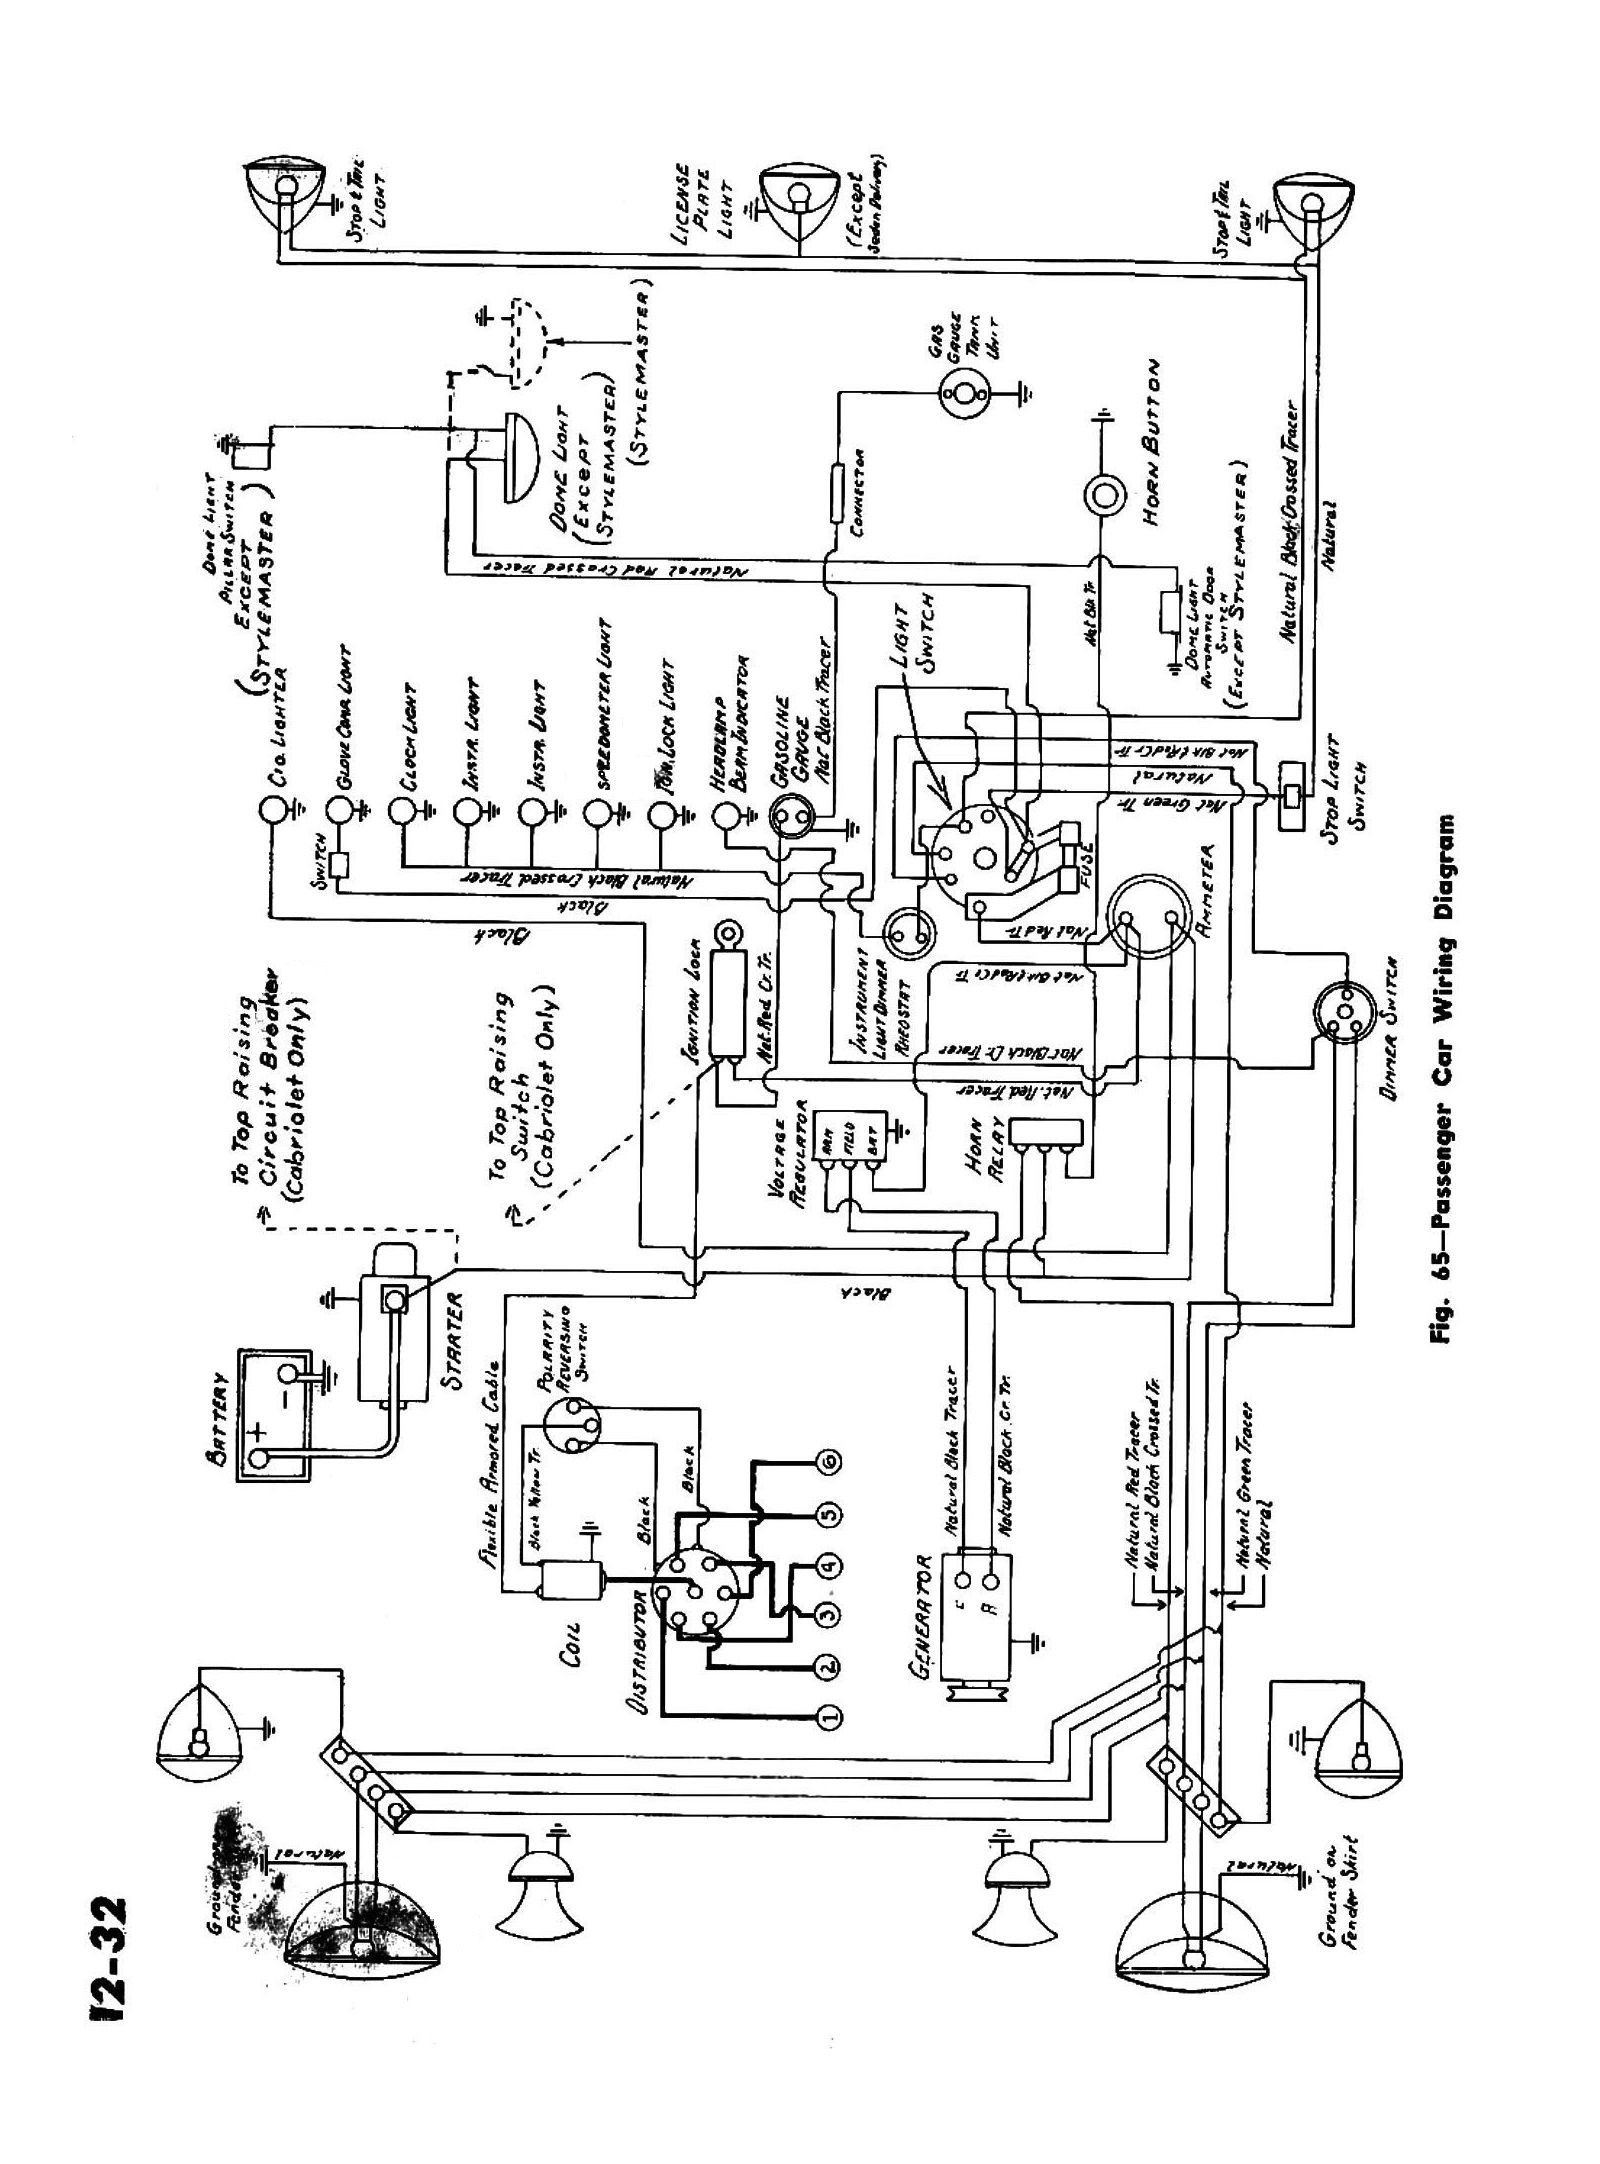 Magnificent 1954 Studebaker Wiring Diagrams Free Image Wiring Diagram Engine Wiring Digital Resources Funapmognl